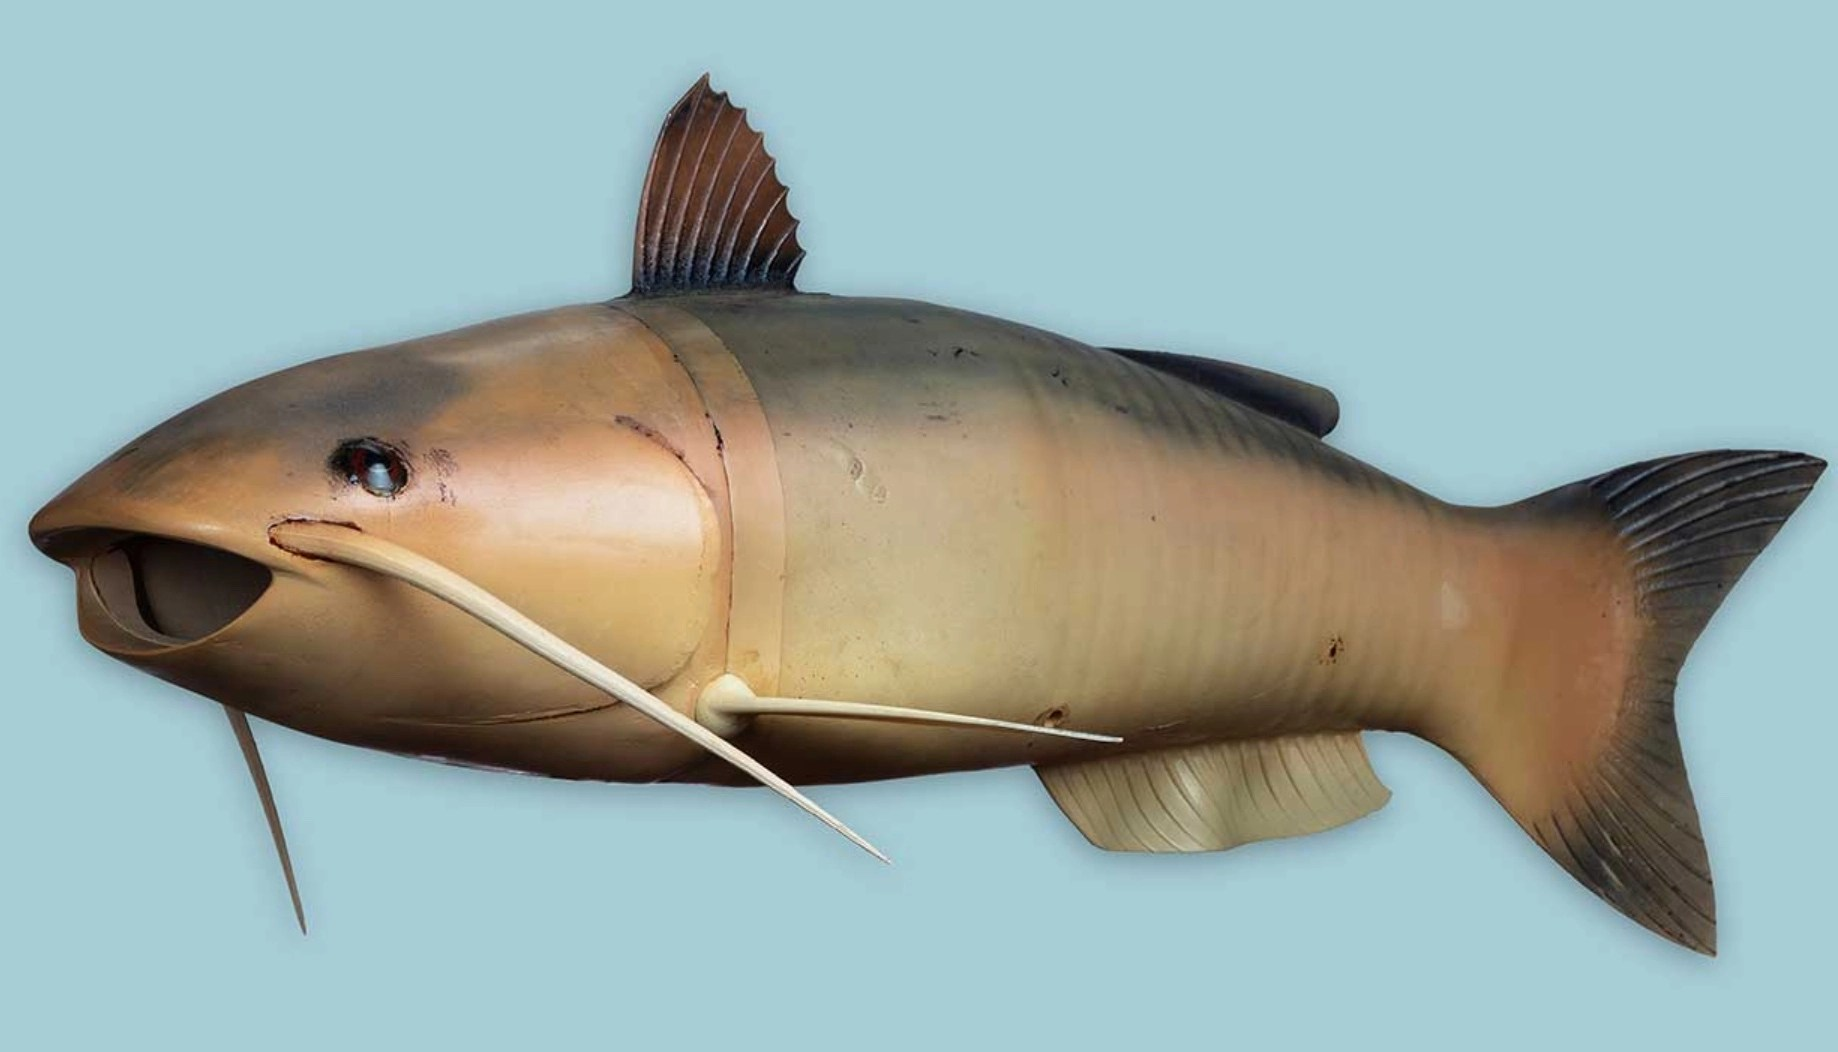 This is Catfish Charlie, the CIA's robot spy fish